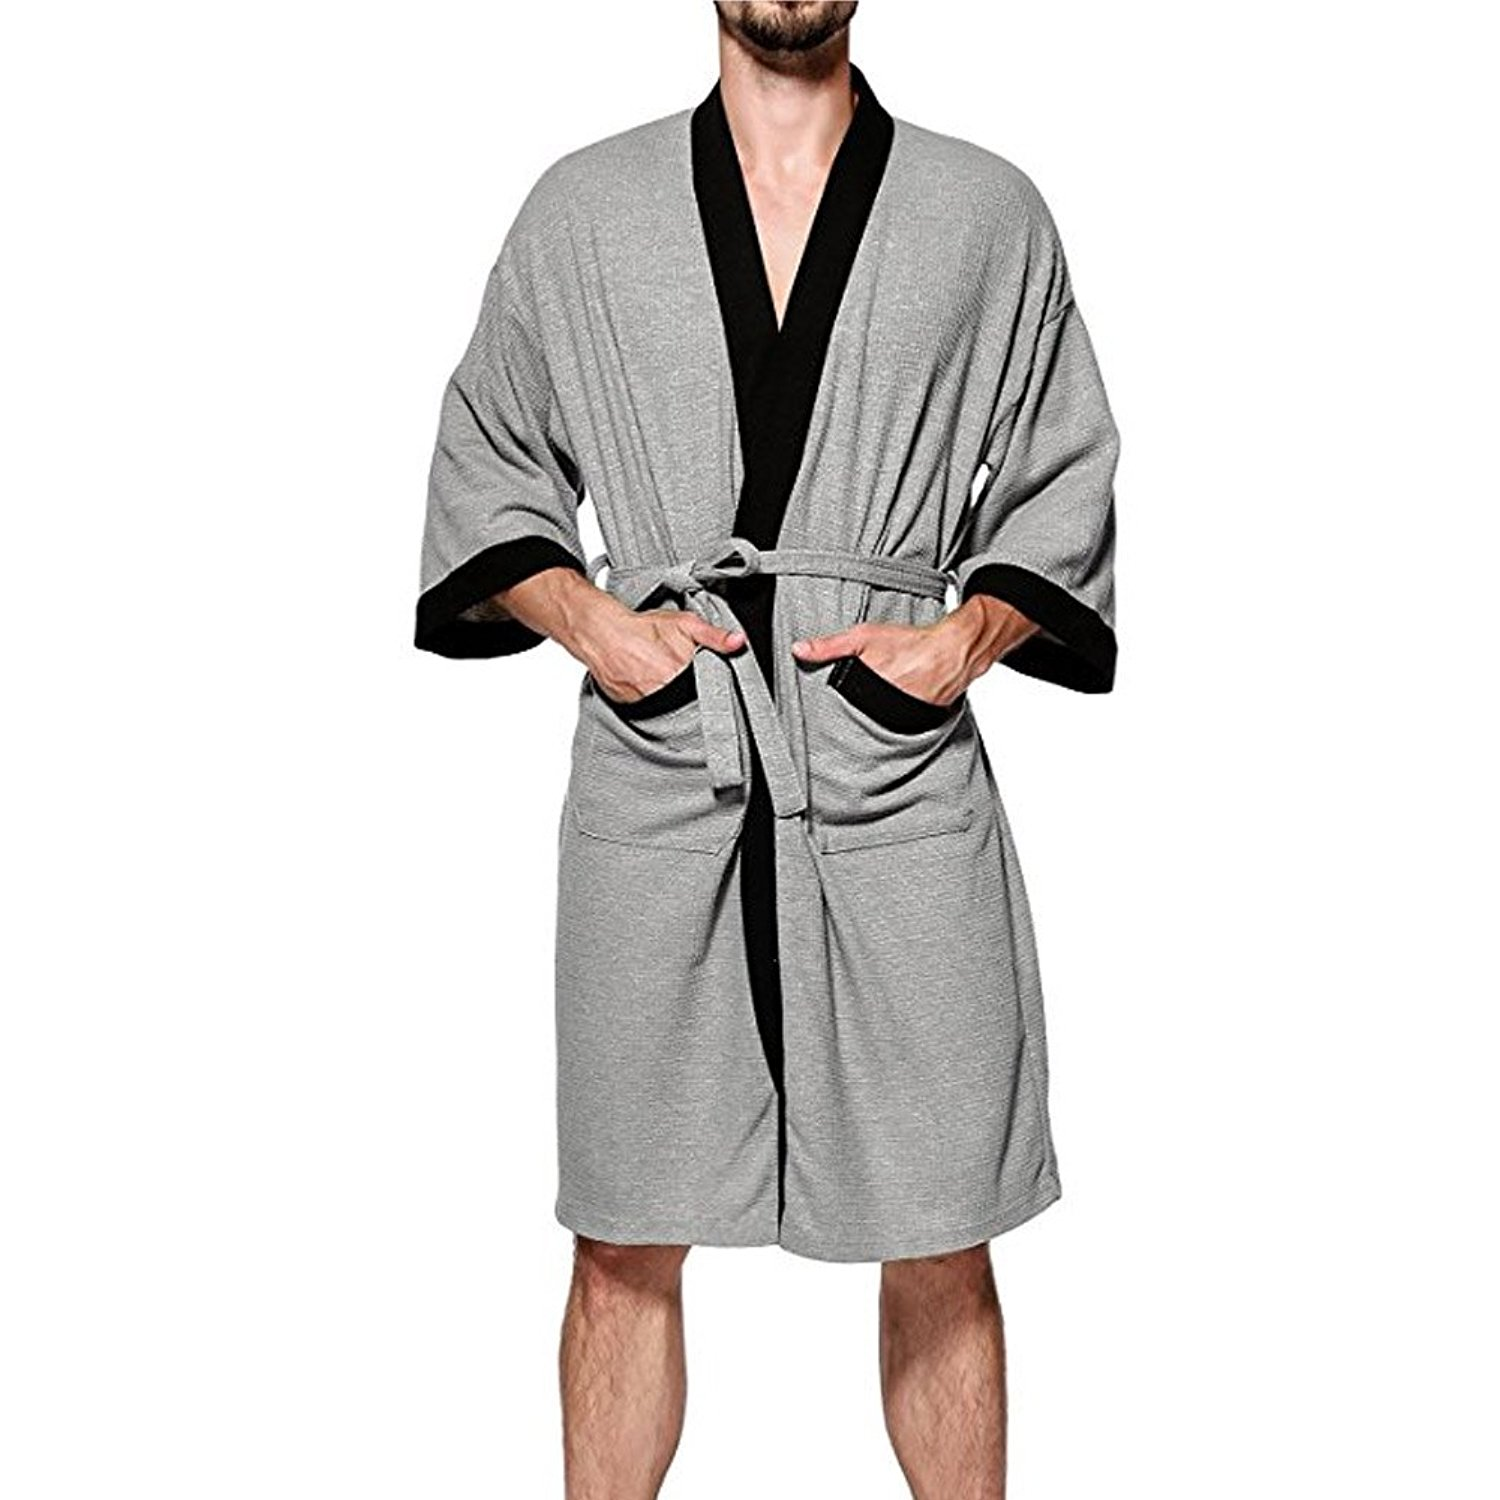 6479ffd3bb Get Quotations · ONAMANO Men s Turkish Cotton Bathrobe Waffle Kimono Terry  Cloth Hotel Spa Robes